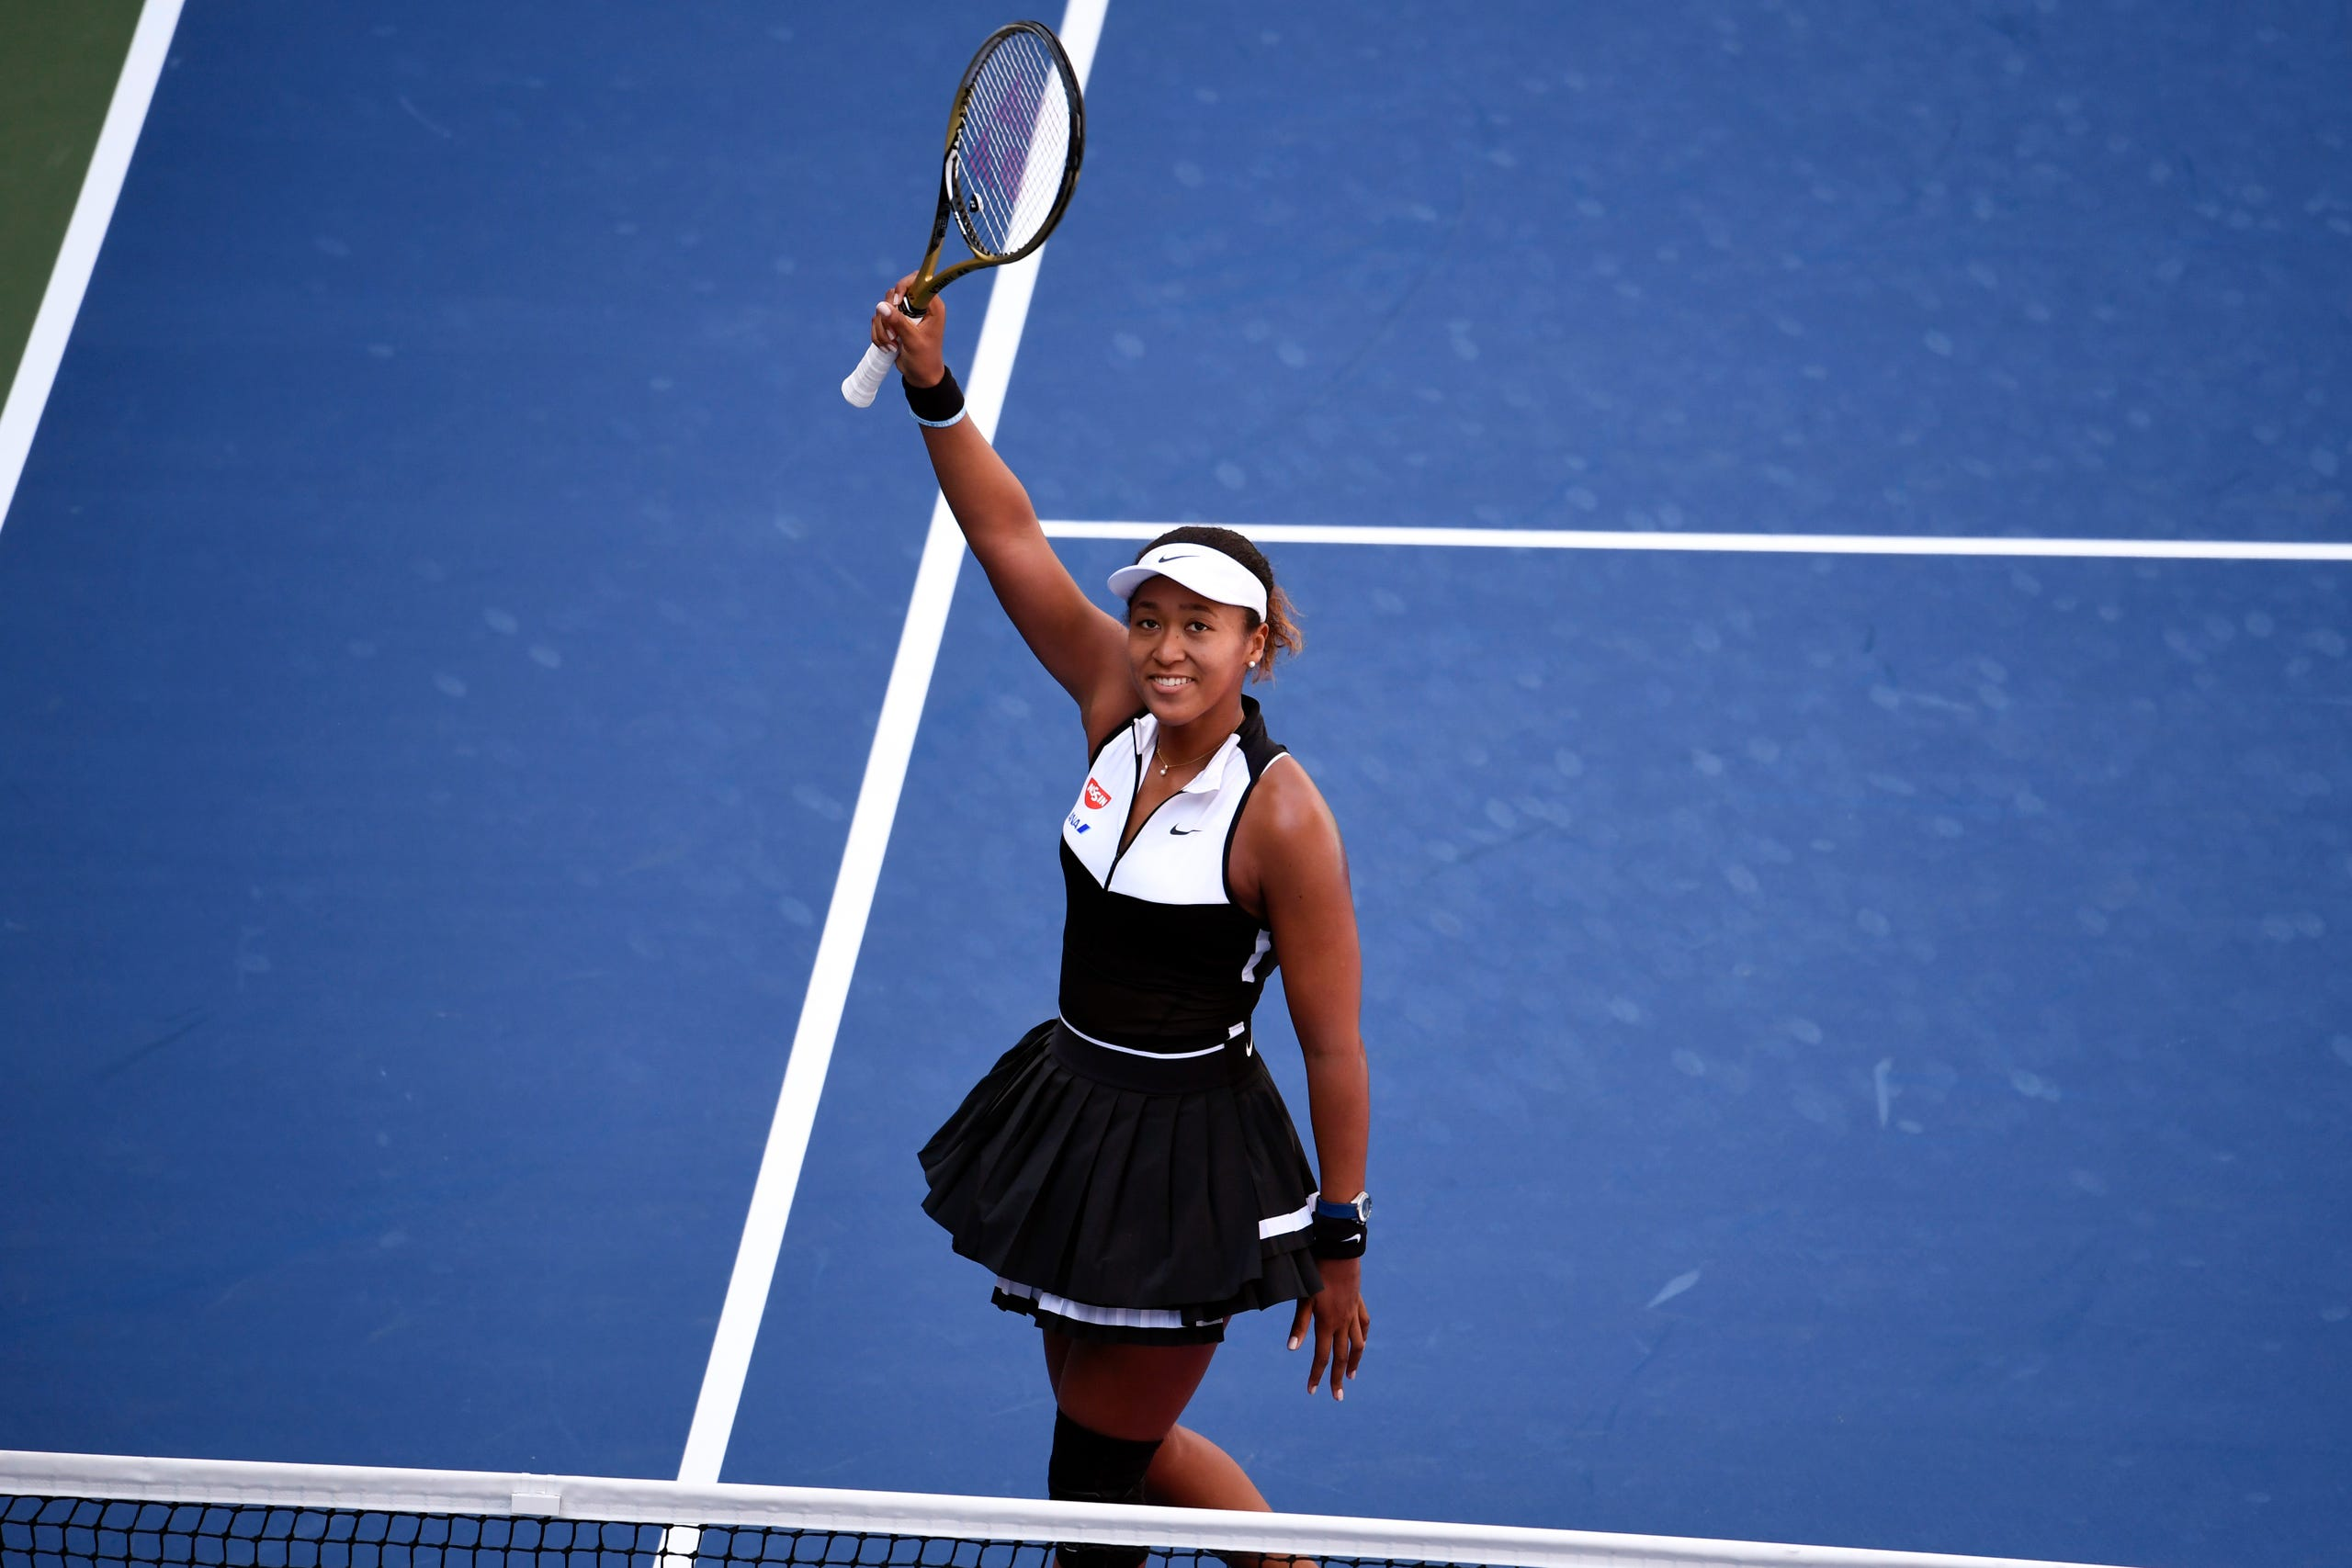 Naomi Osaka reacts after defeating Magda Linette of Poland in the second round on day four of the 2019 U.S. Open tennis tournament at USTA Billie Jean King National Tennis Center on August 29, 2019.